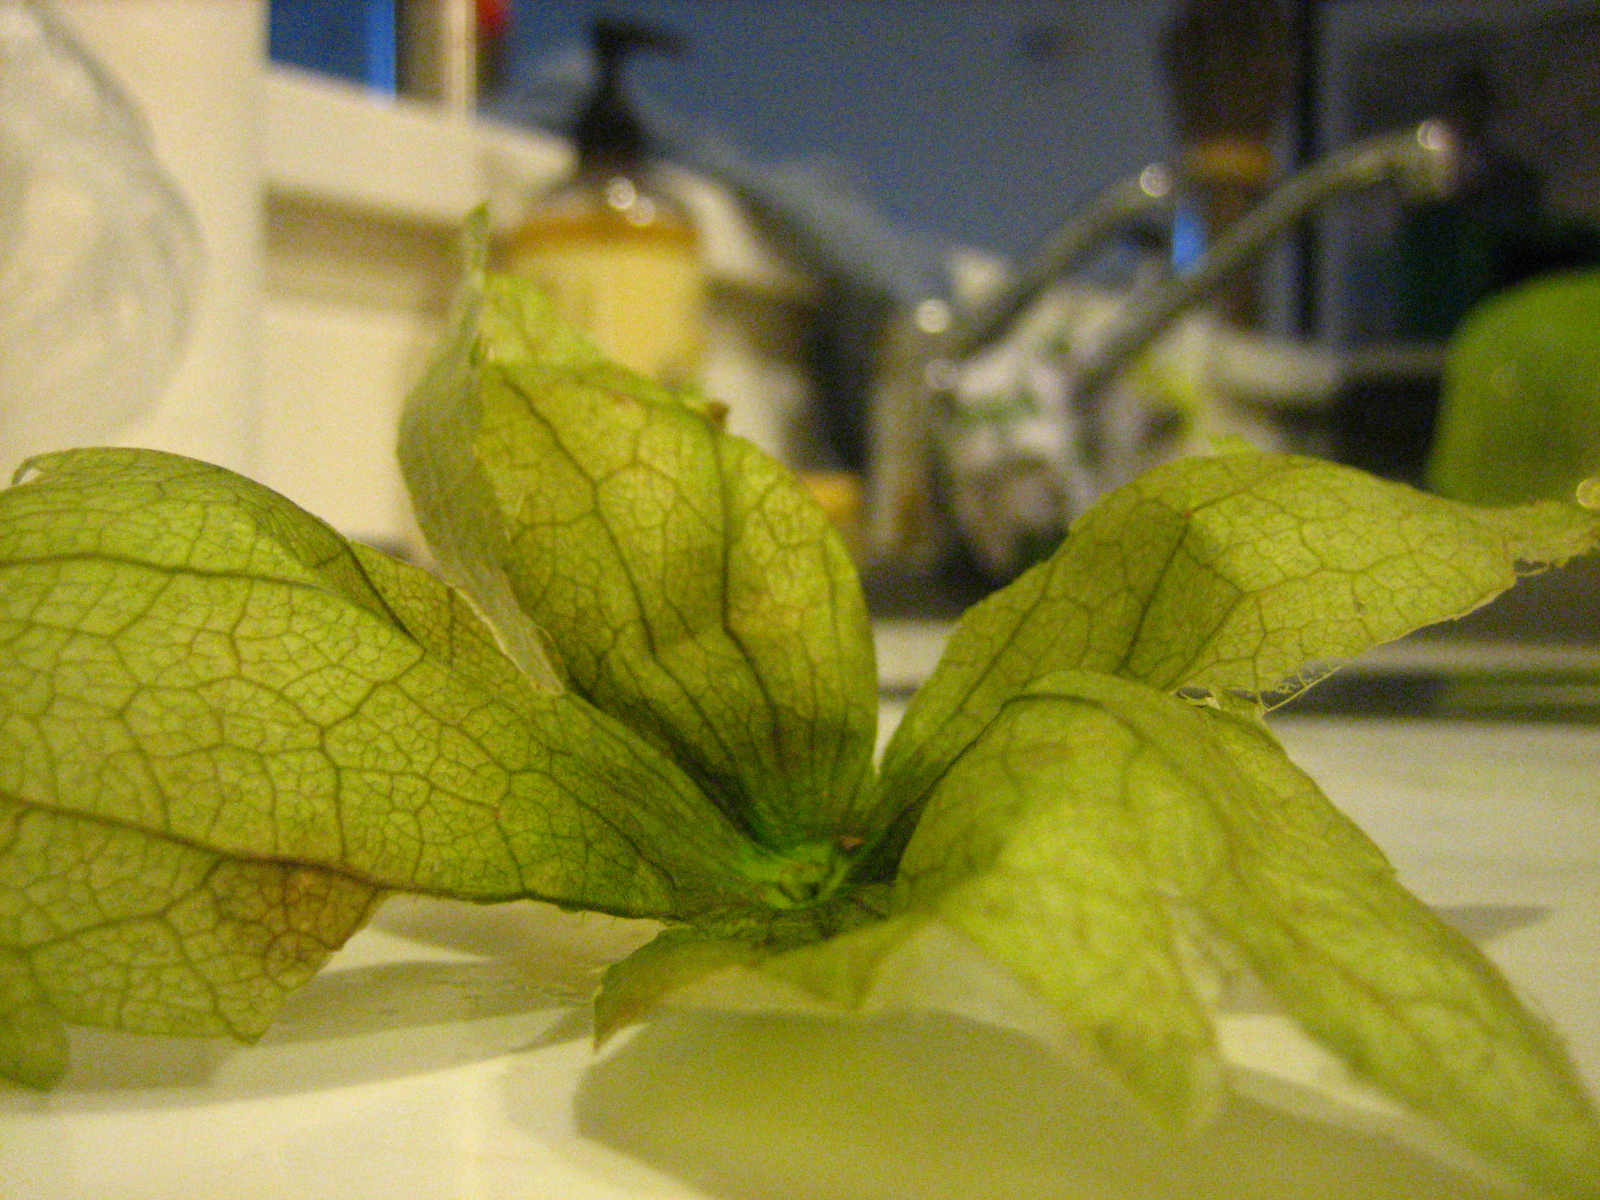 The husk from a tomatillo, inverted.  Who knew those sticky husks could make such lovely floral arrangements?